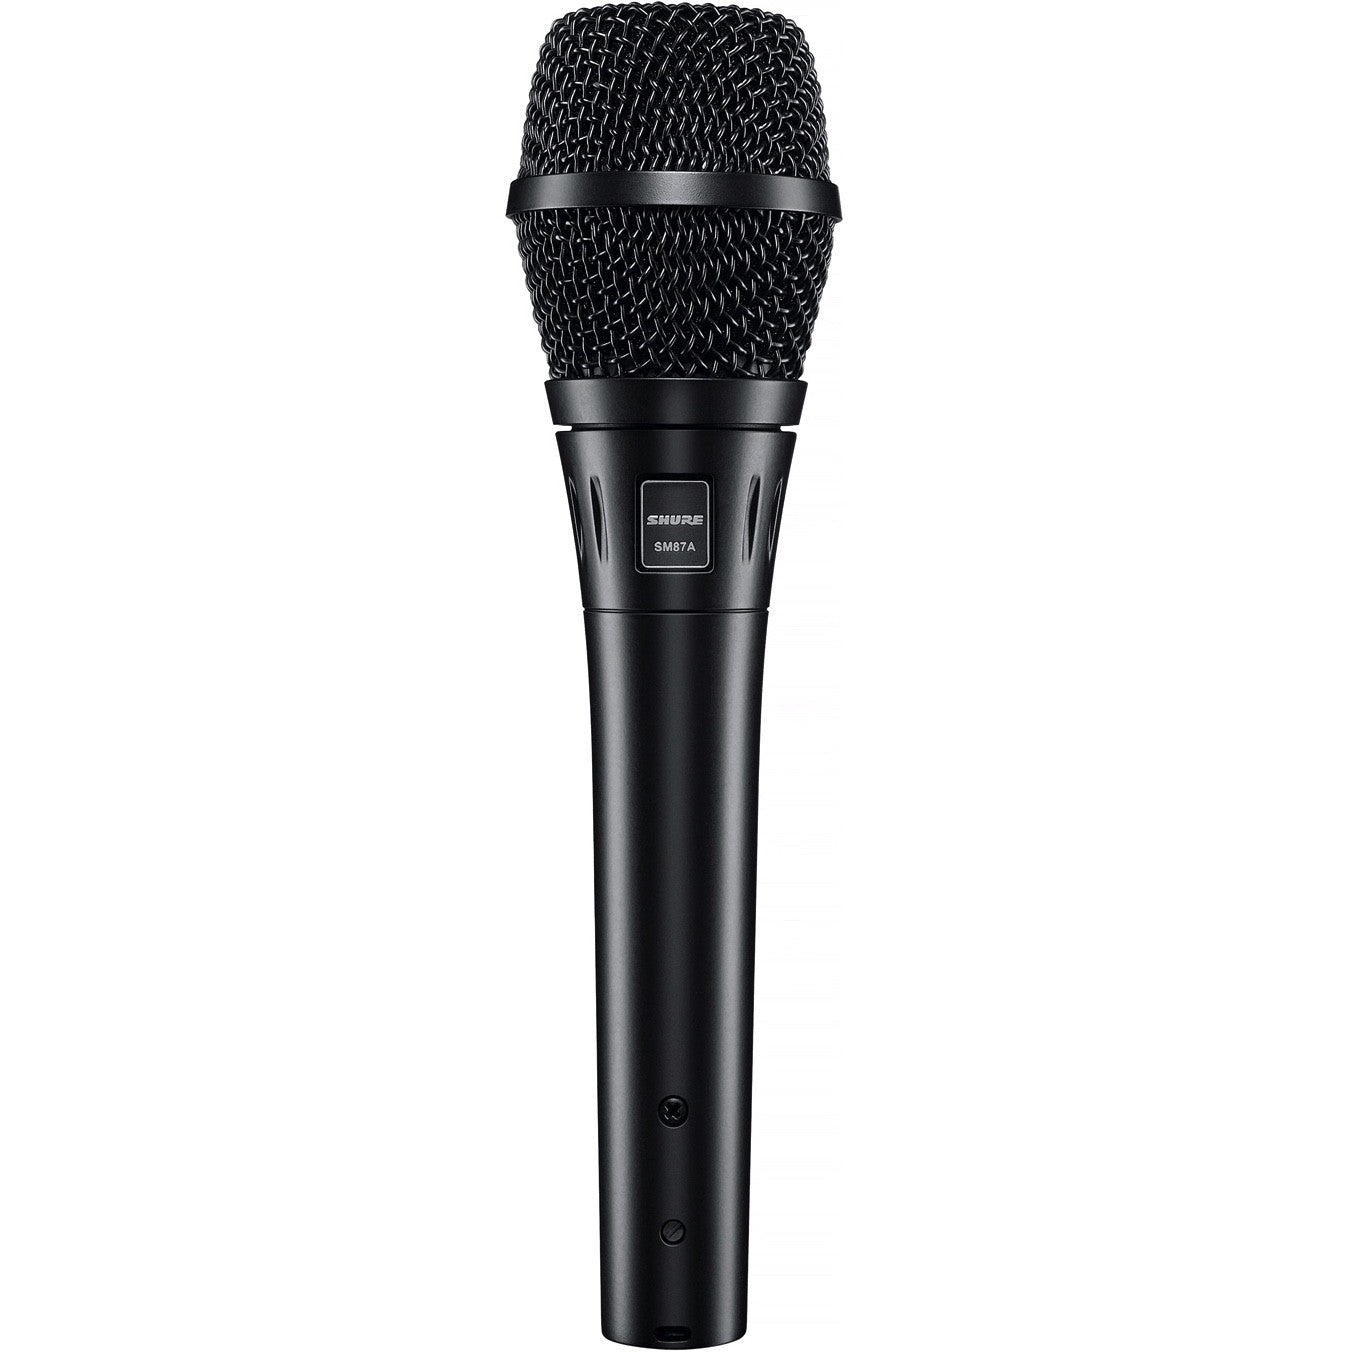 Shure SM87A Handheld Condenser Microphone | Music Experience | Shop Online | South Africa